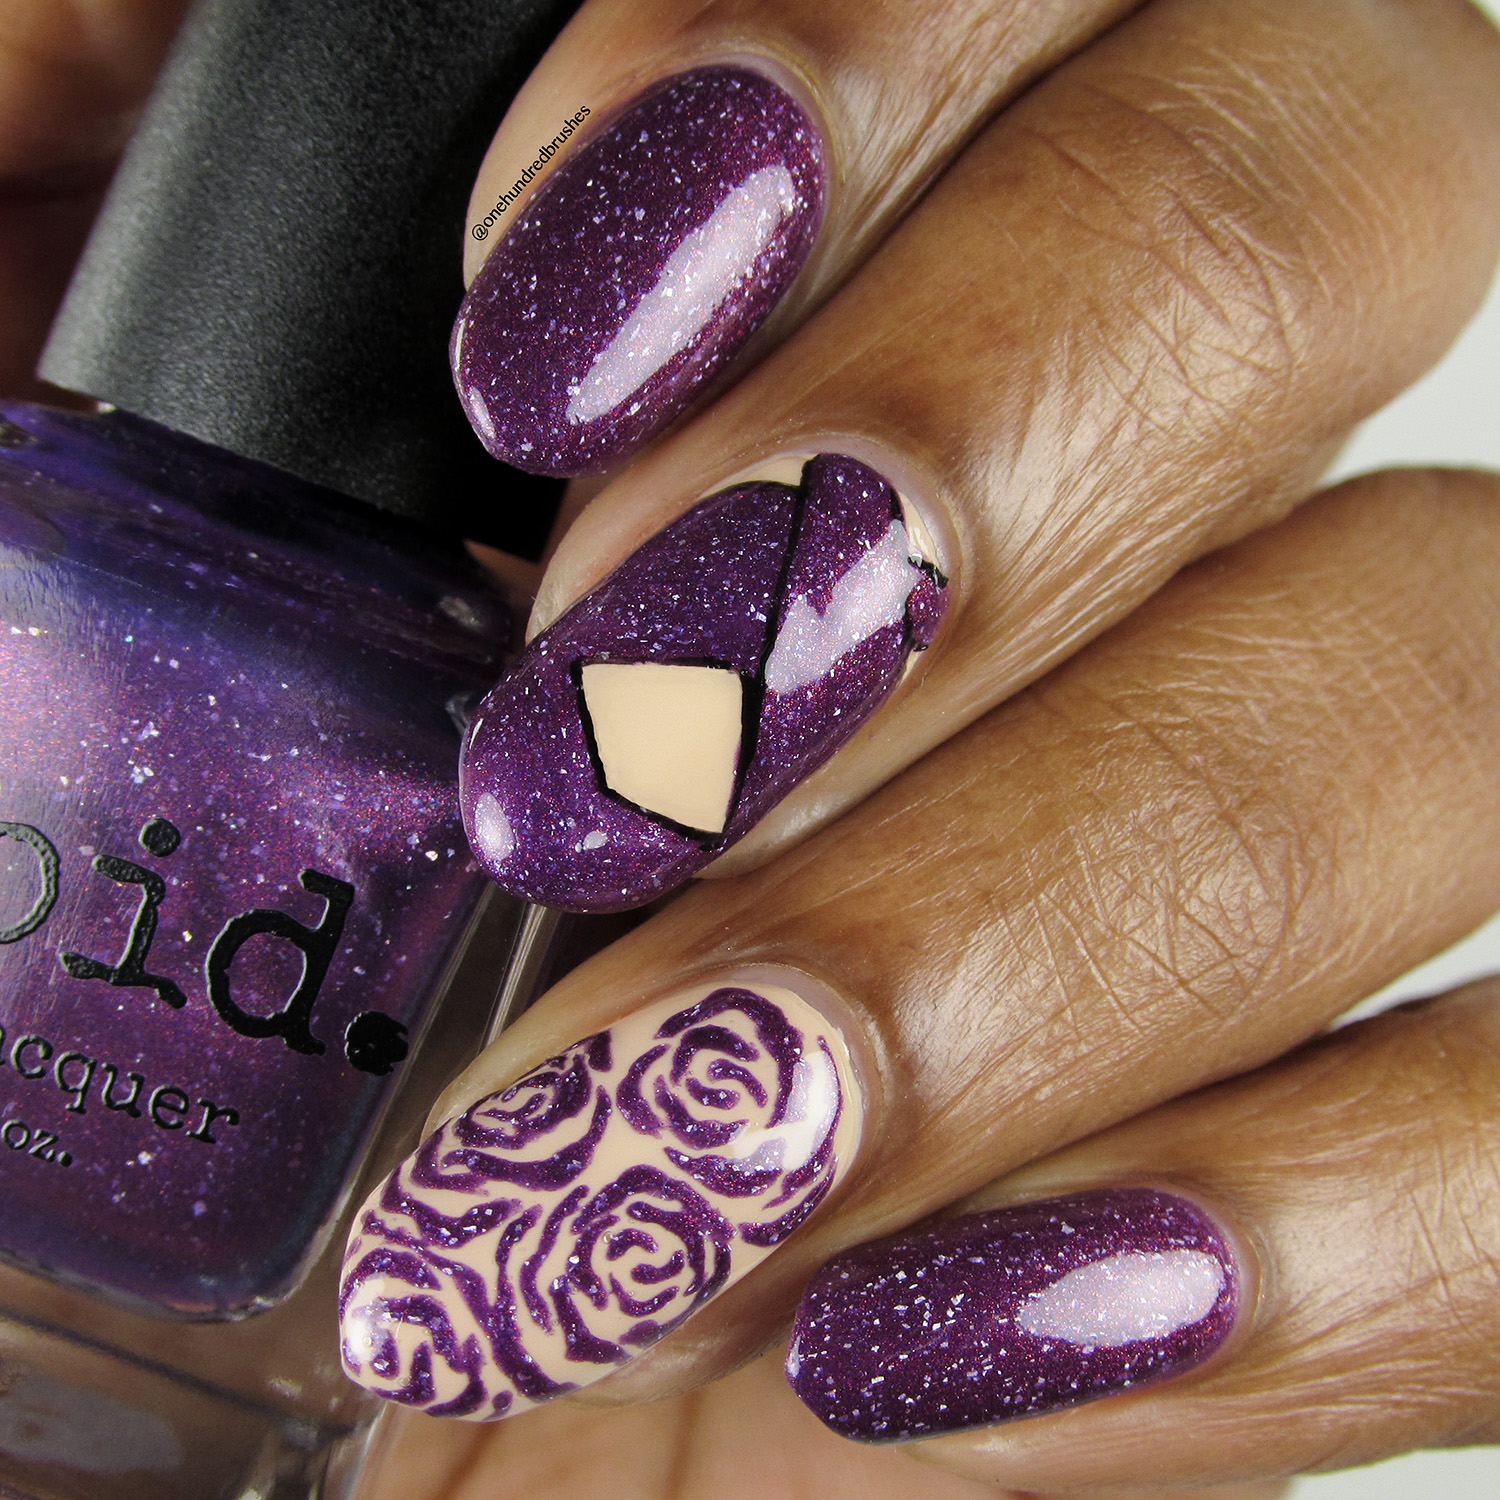 Anything For Selenas - bottle - Vapid Lacquer - May Polish Pickup - thermal - multichrome - holographic - como la flor - purple jumper